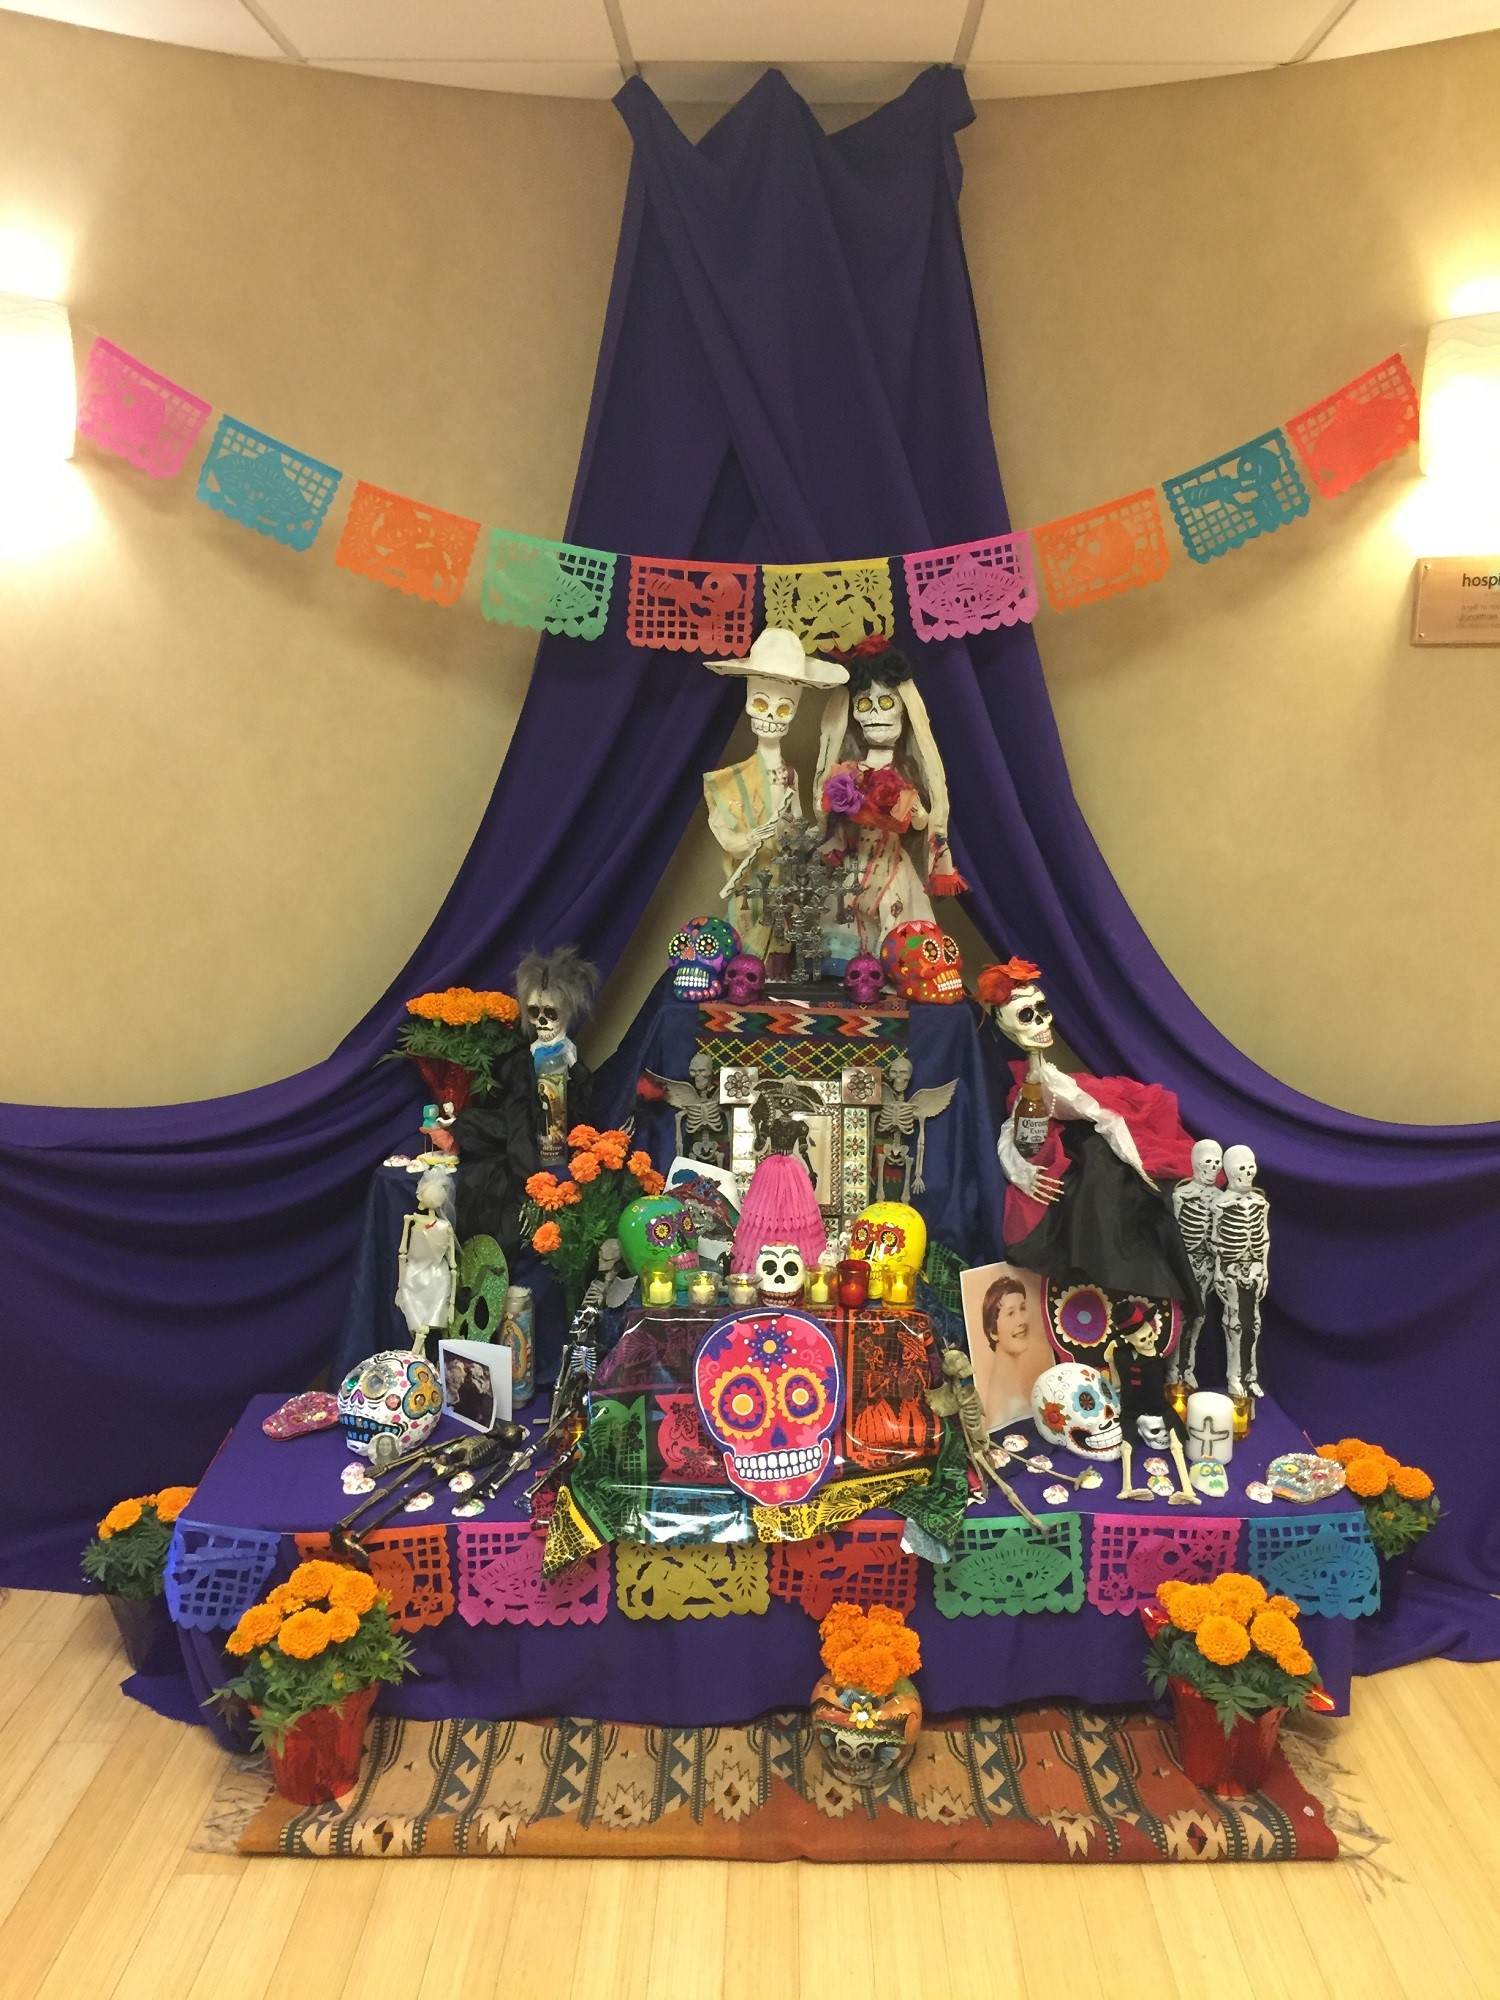 Día de los Muertos altar on display at Hospice of Santa Barbara